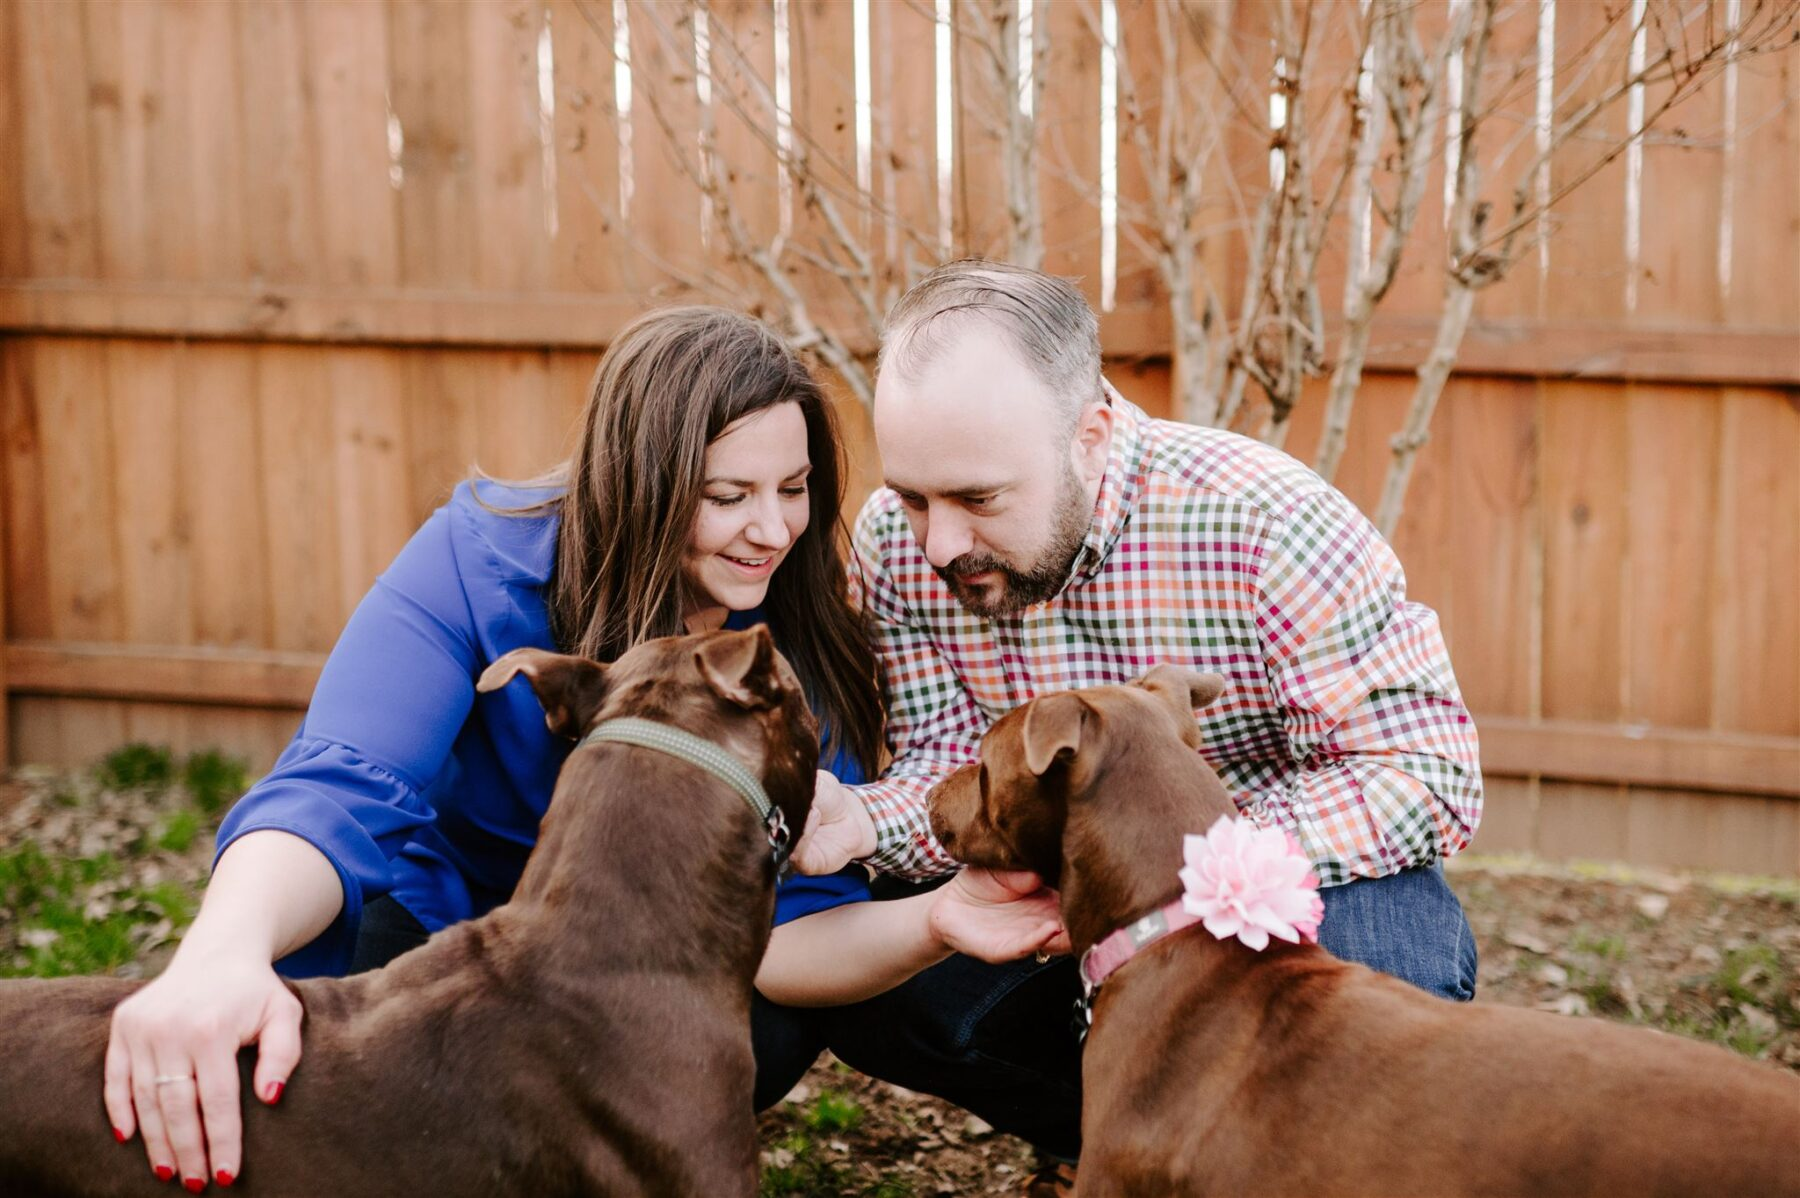 Laid Back Engagement Session from Sara Bill Photography featured on Nashville Bride Guide